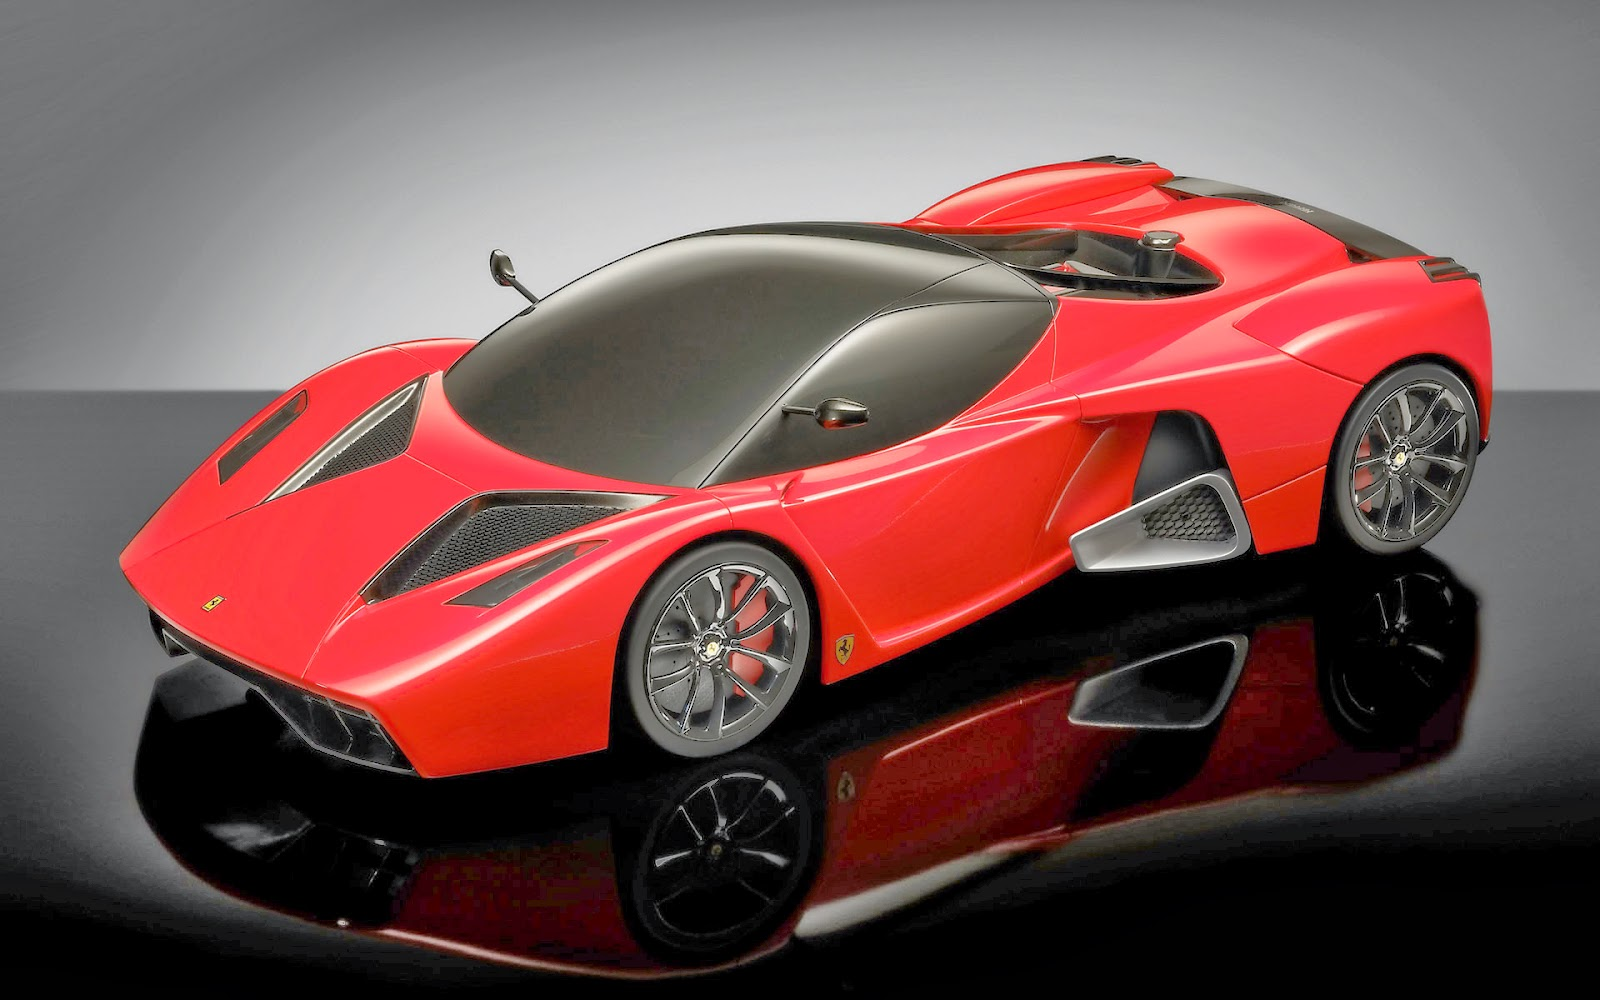 Lovable images ferrari car hd pictures free download - Ferrari hd wallpapers free download ...